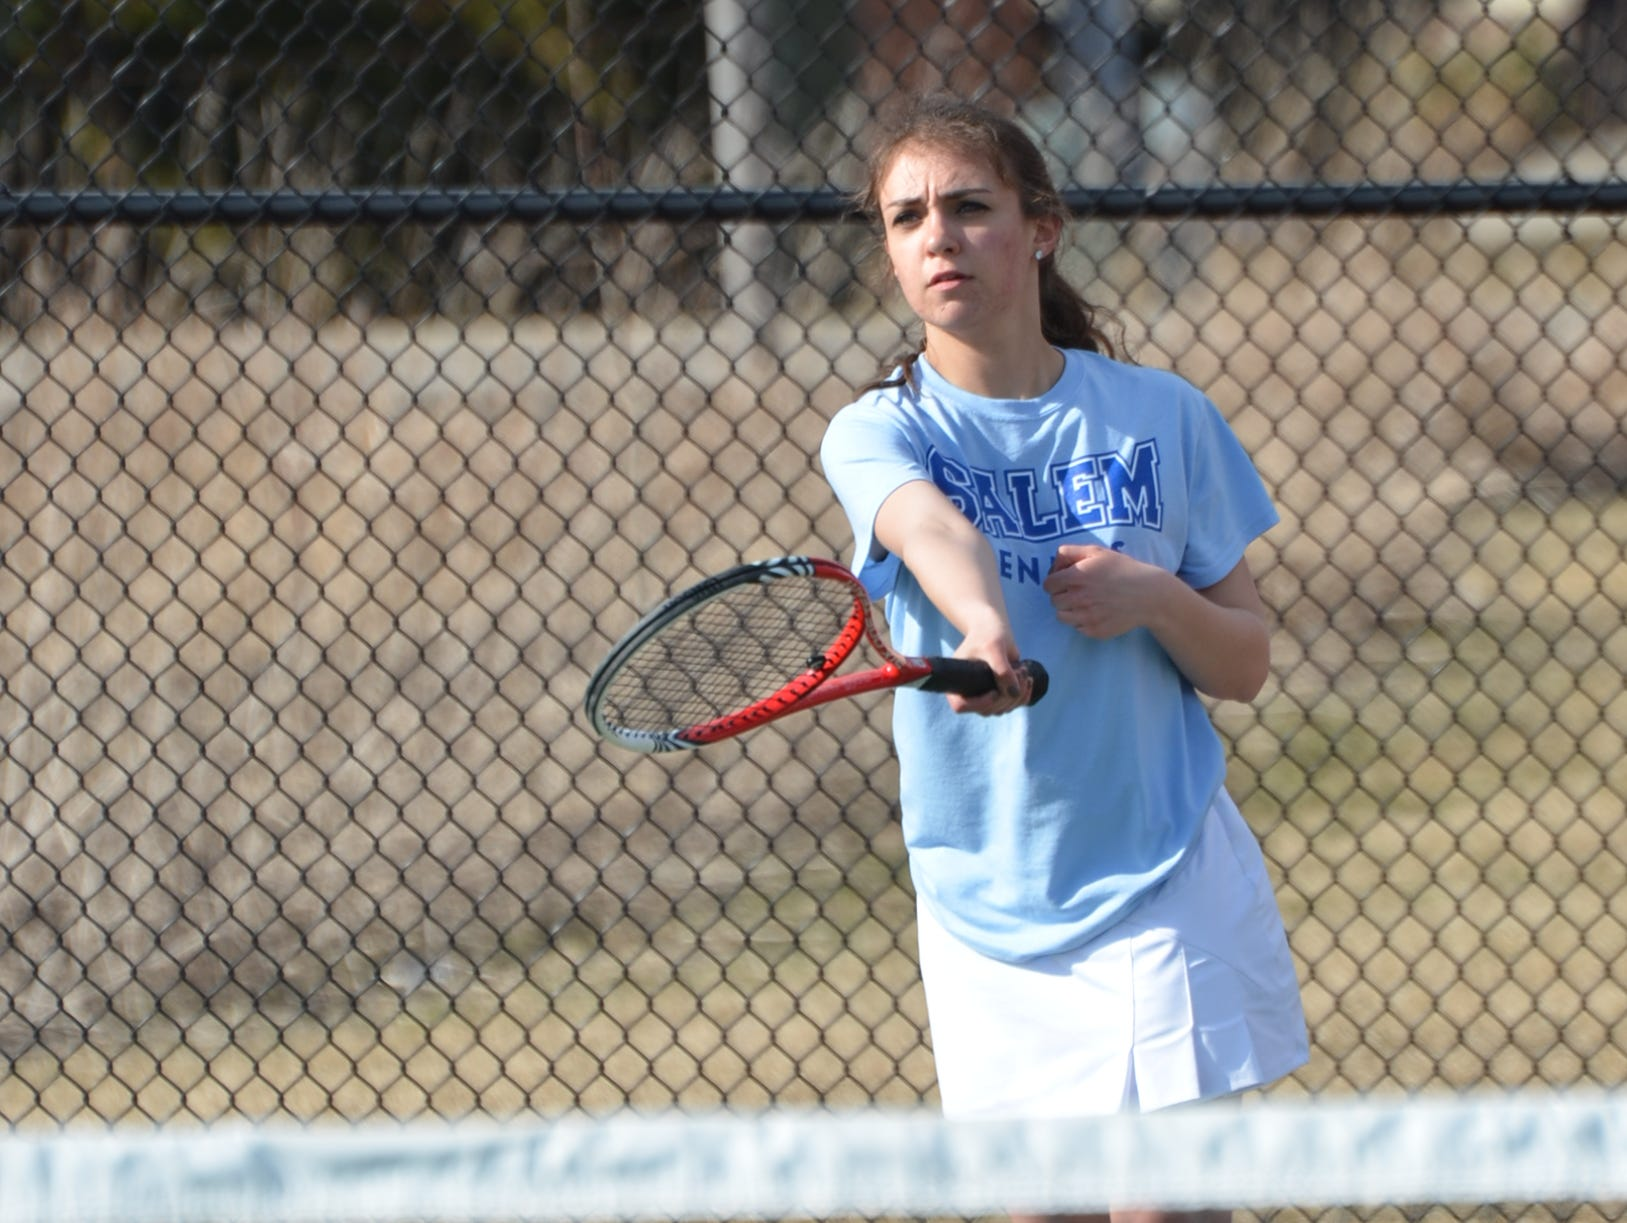 Kylie Enright delivers a shot for Salem. She is a solid performer at No. 4 singles for the Rocks.